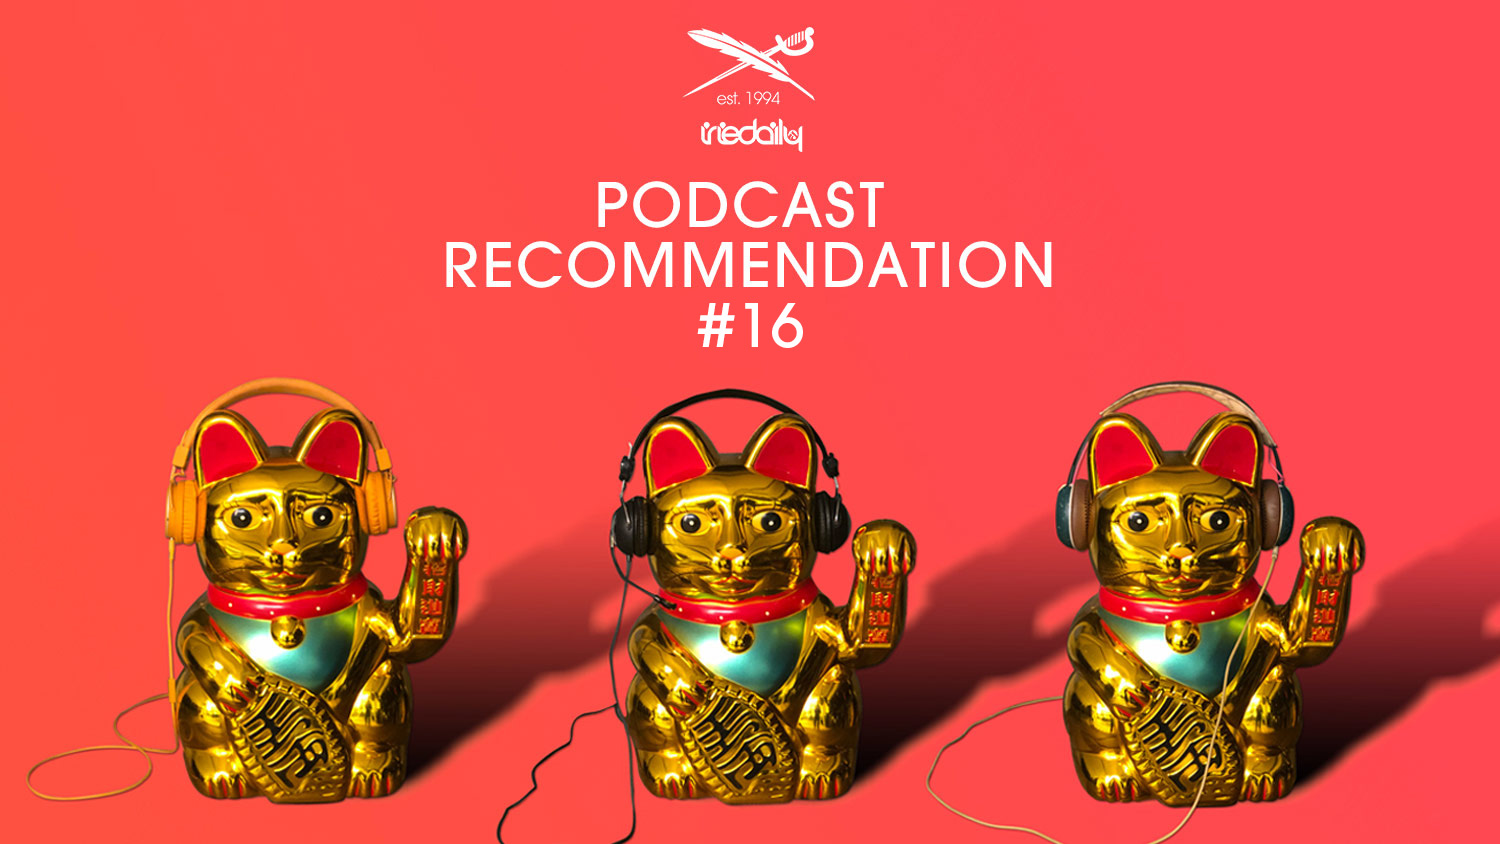 IRIEDAILY Podcast Recommendation